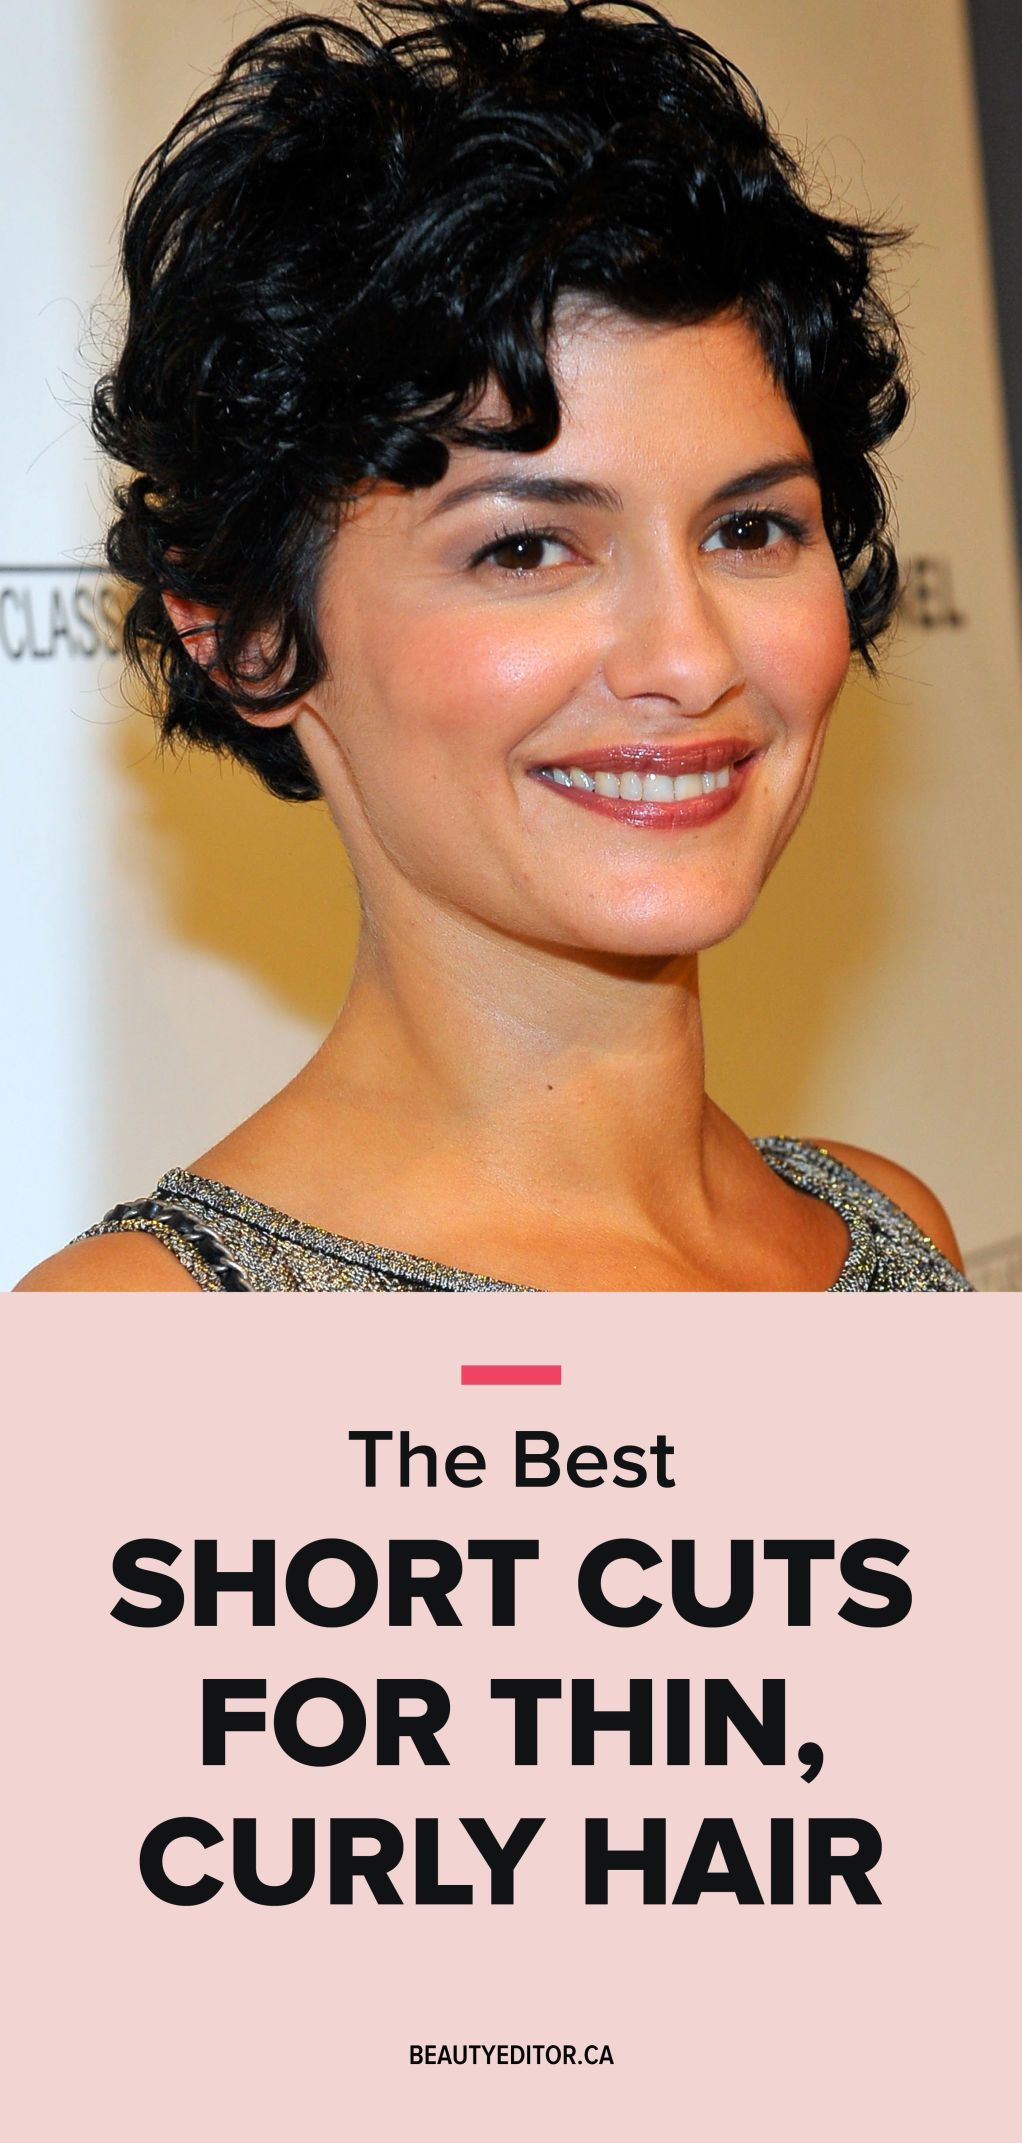 Ask a Hairstylist: The Best Short Haircuts for Thin, Curly Hair